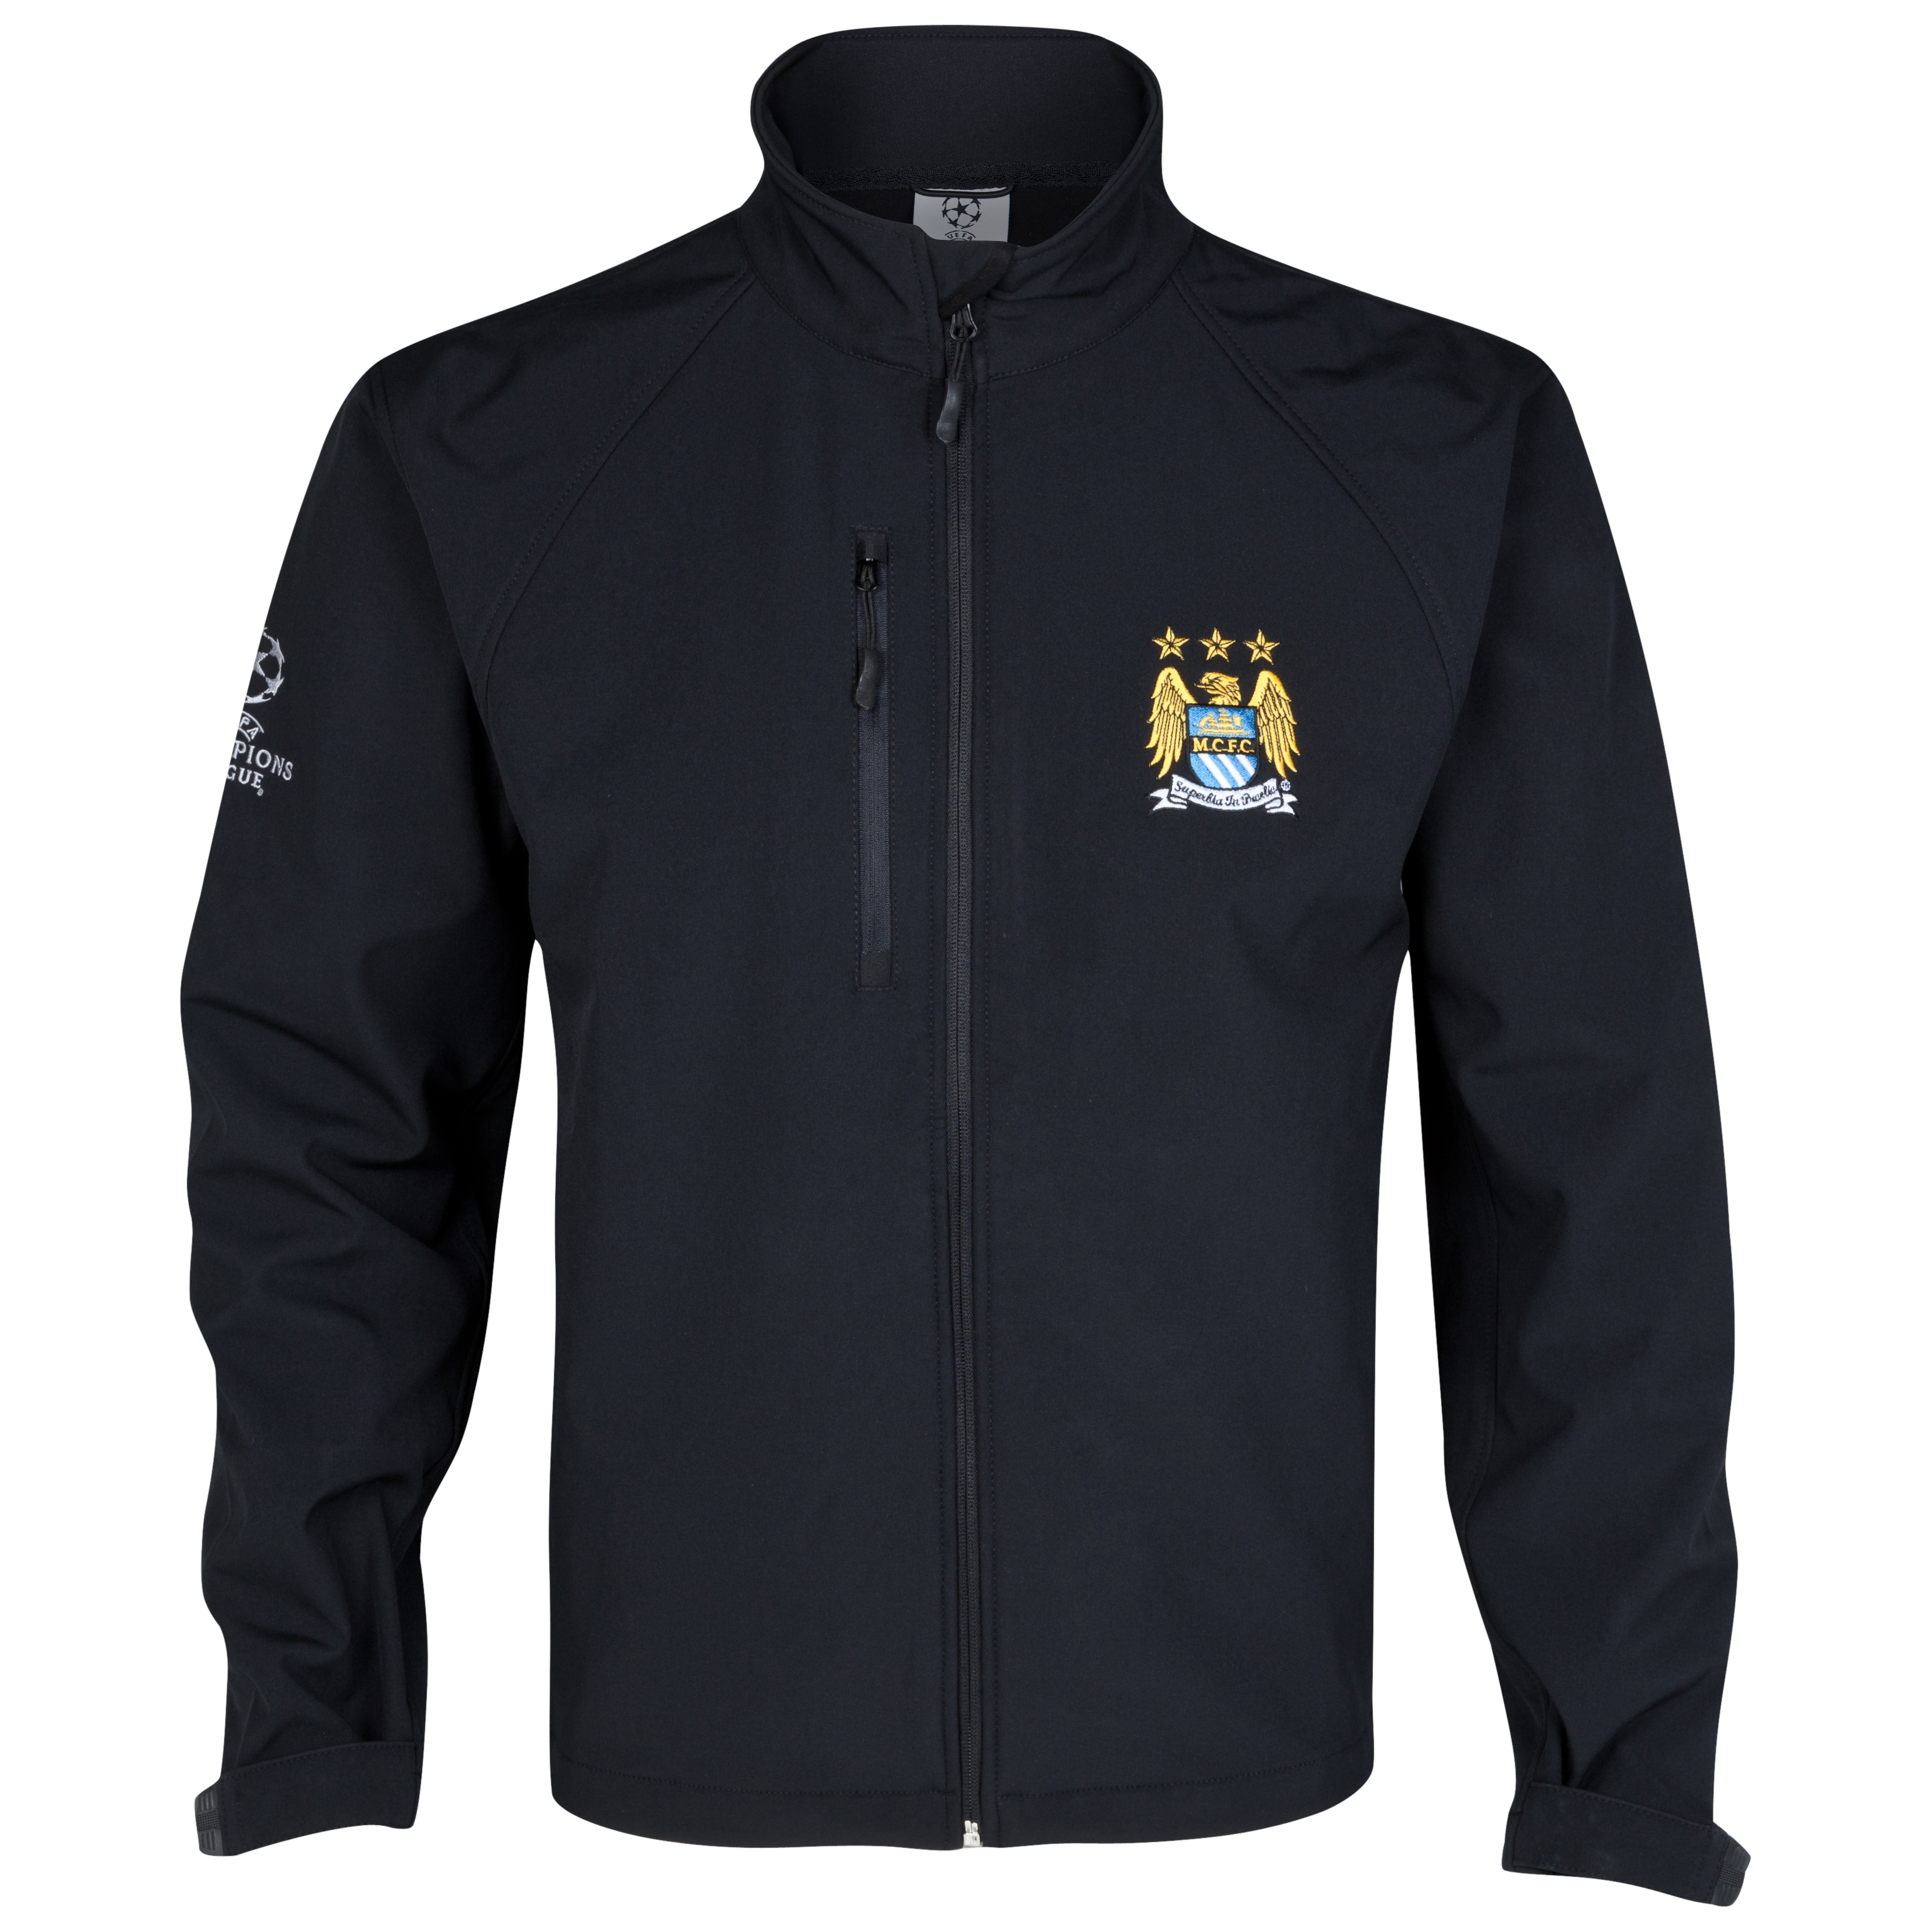 Manchester City Embroidered Soft Shell Jacket - Black